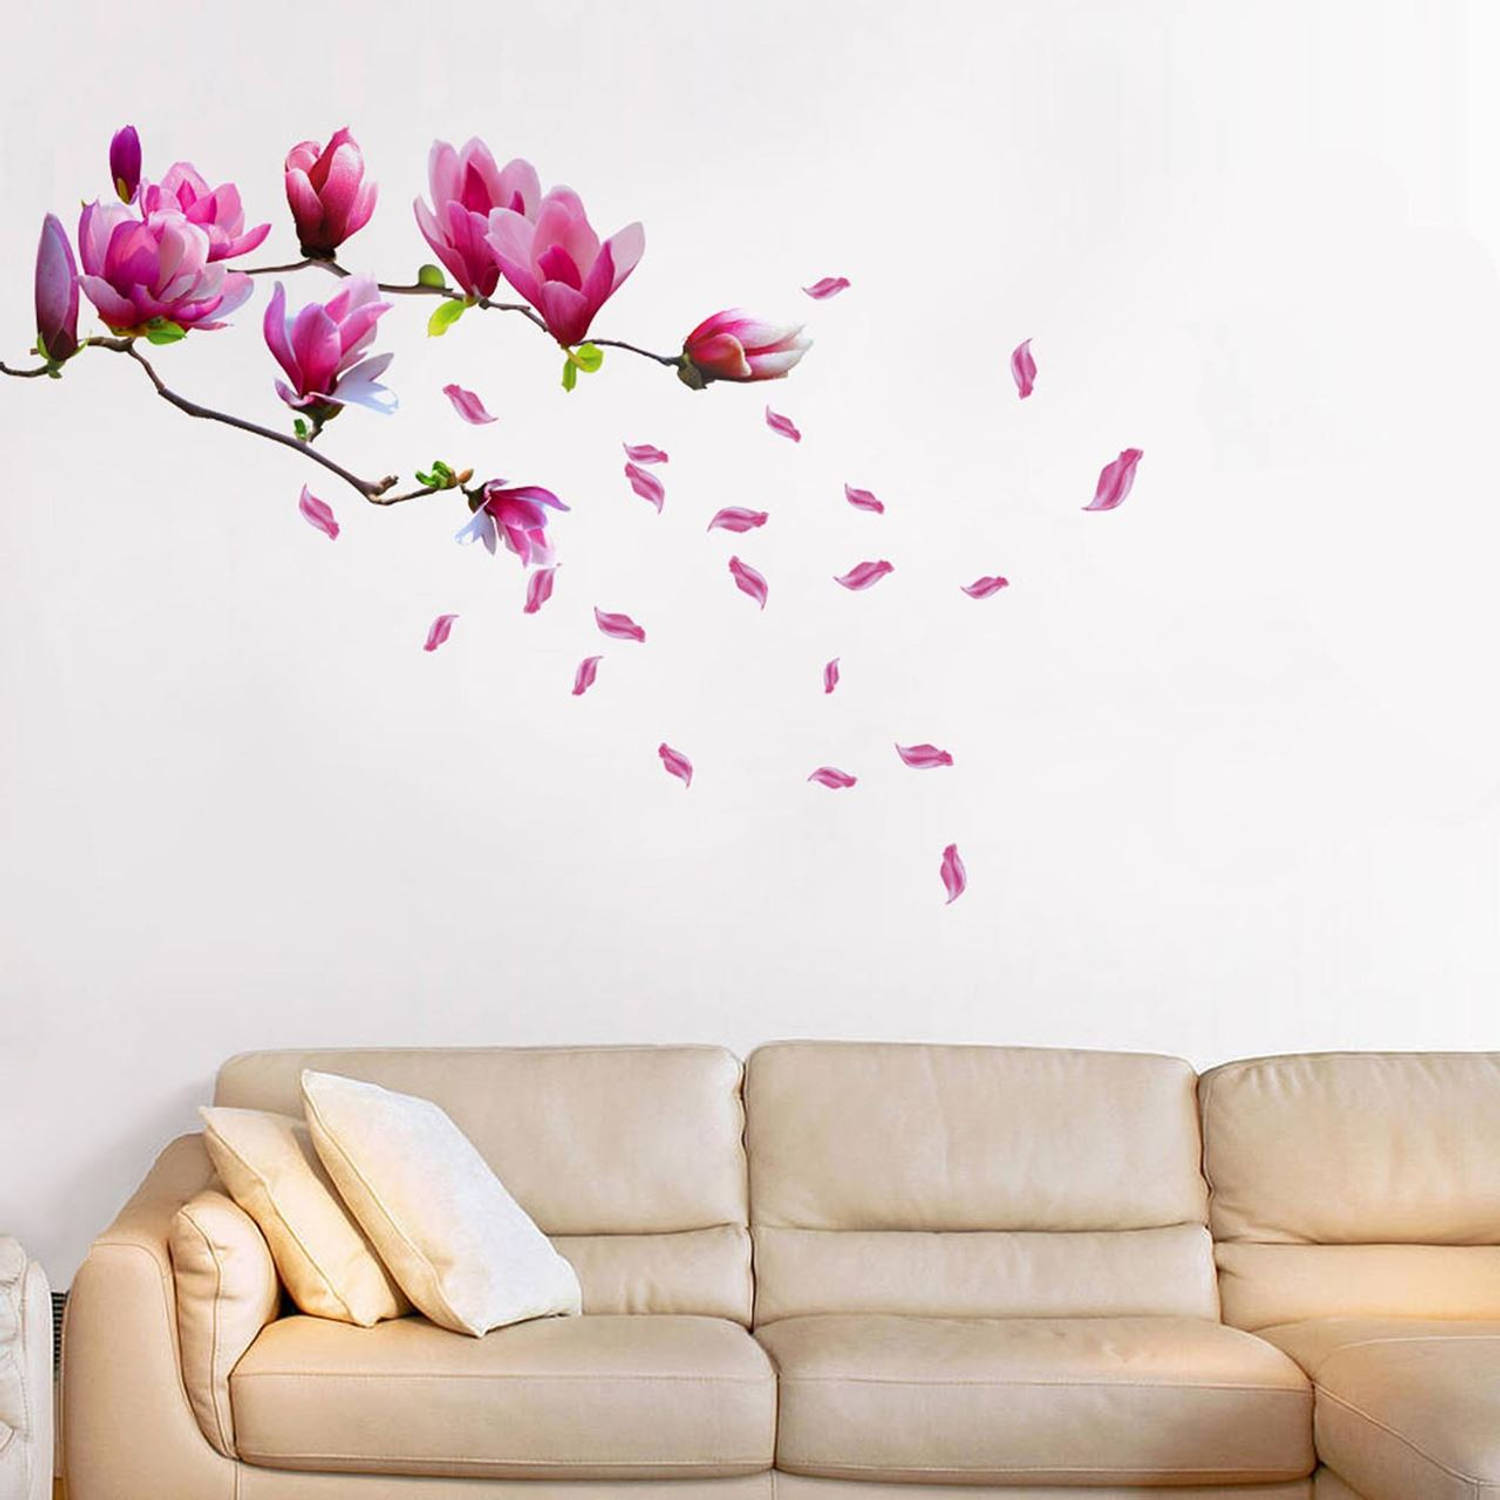 Walplus home decoratie sticker - magnolia bloem